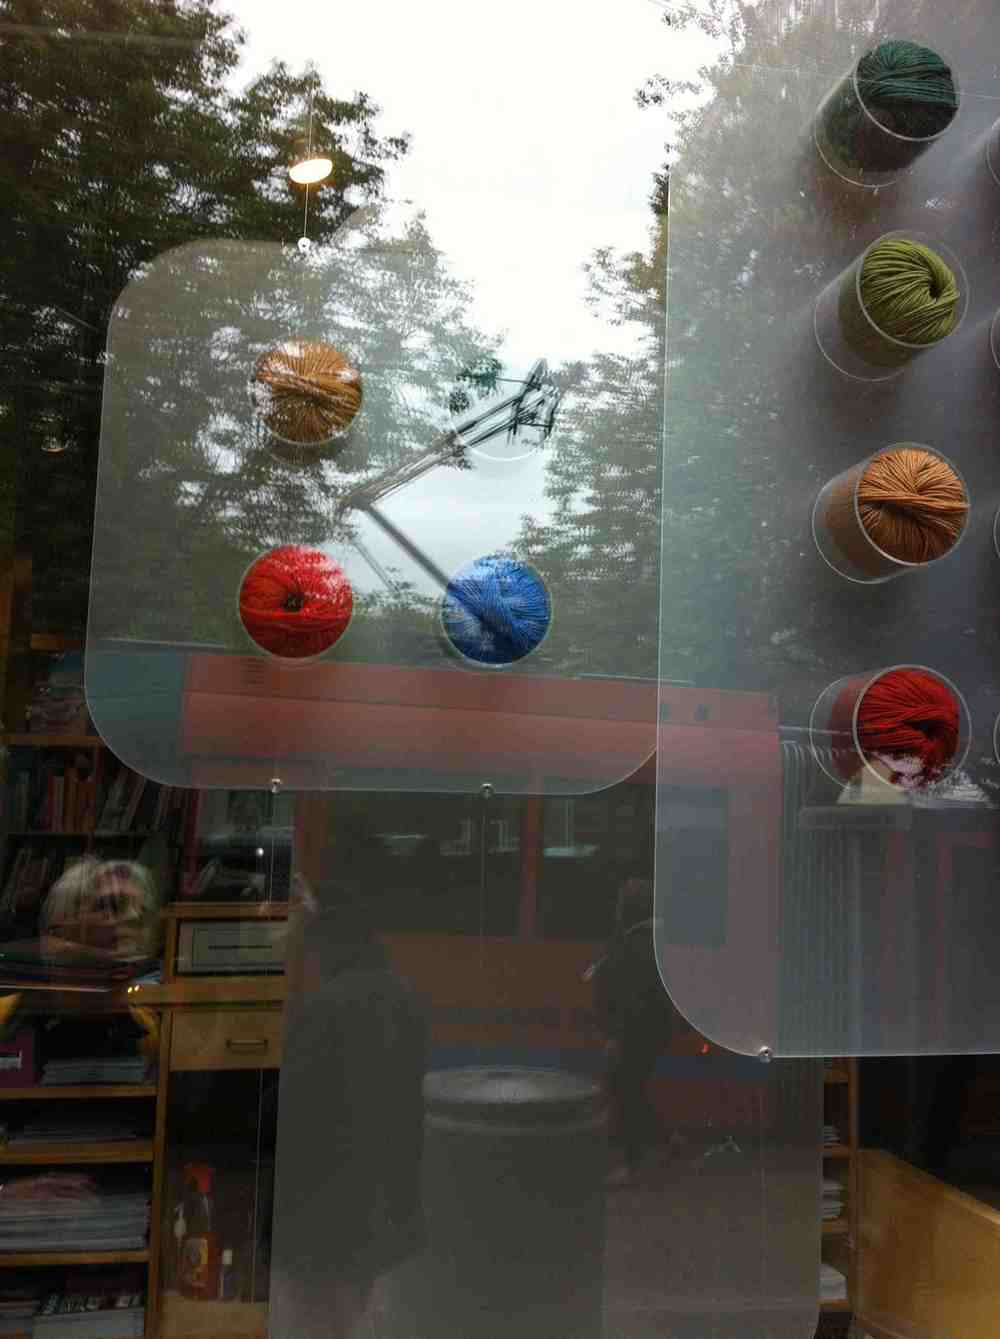 Found this window with fun colours of yarn displayed in a cool quirky manner that is made even more fun with the reflections of various people wander the street and getting on the bus.  Flaneuring at its best.